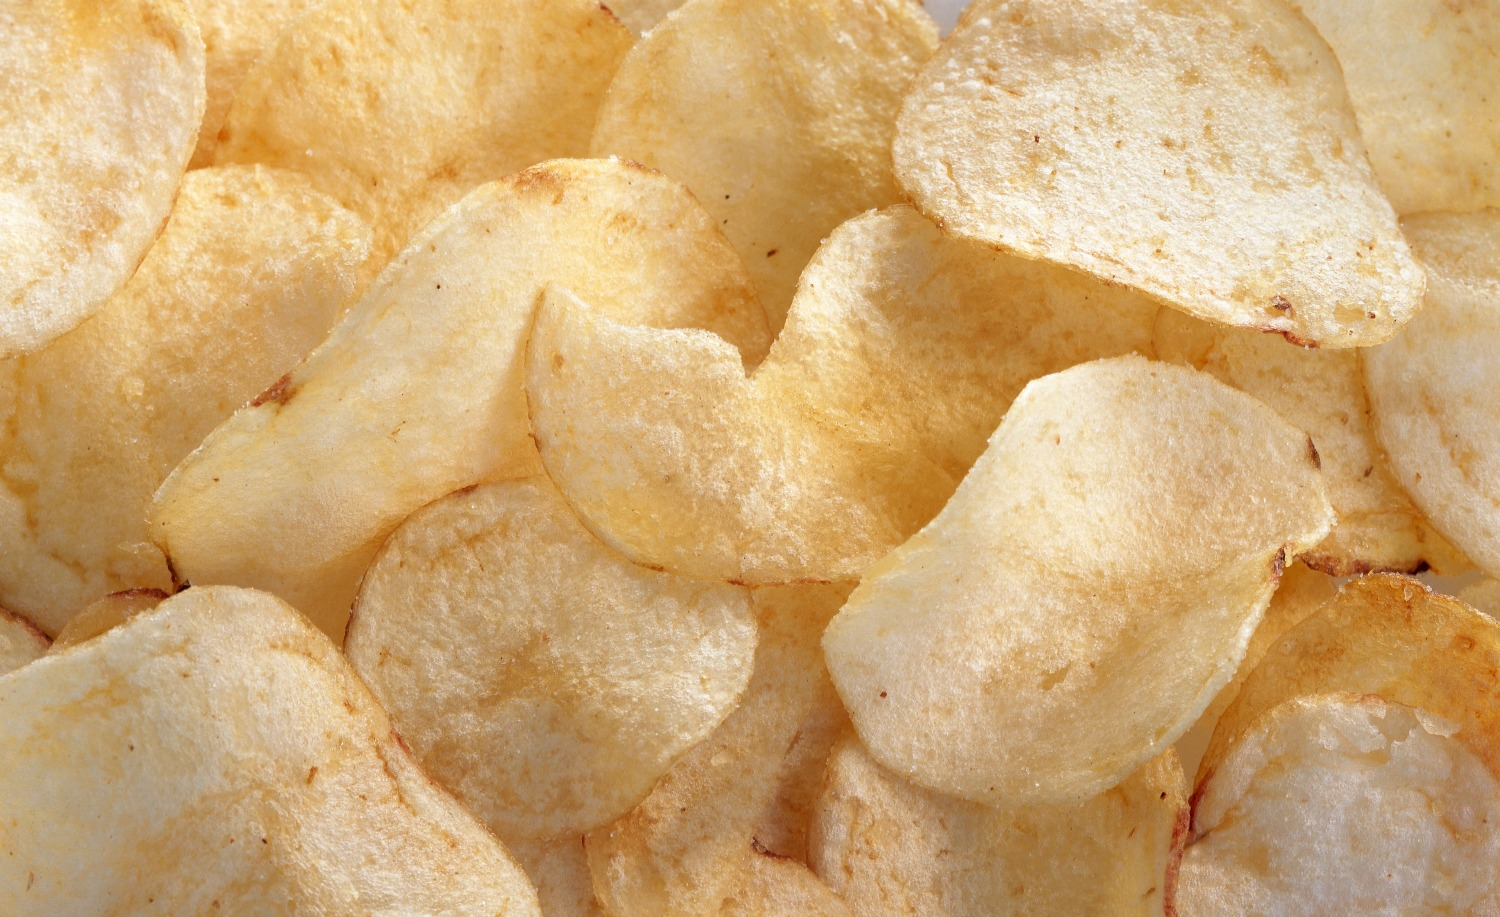 Baked Lay's Chips